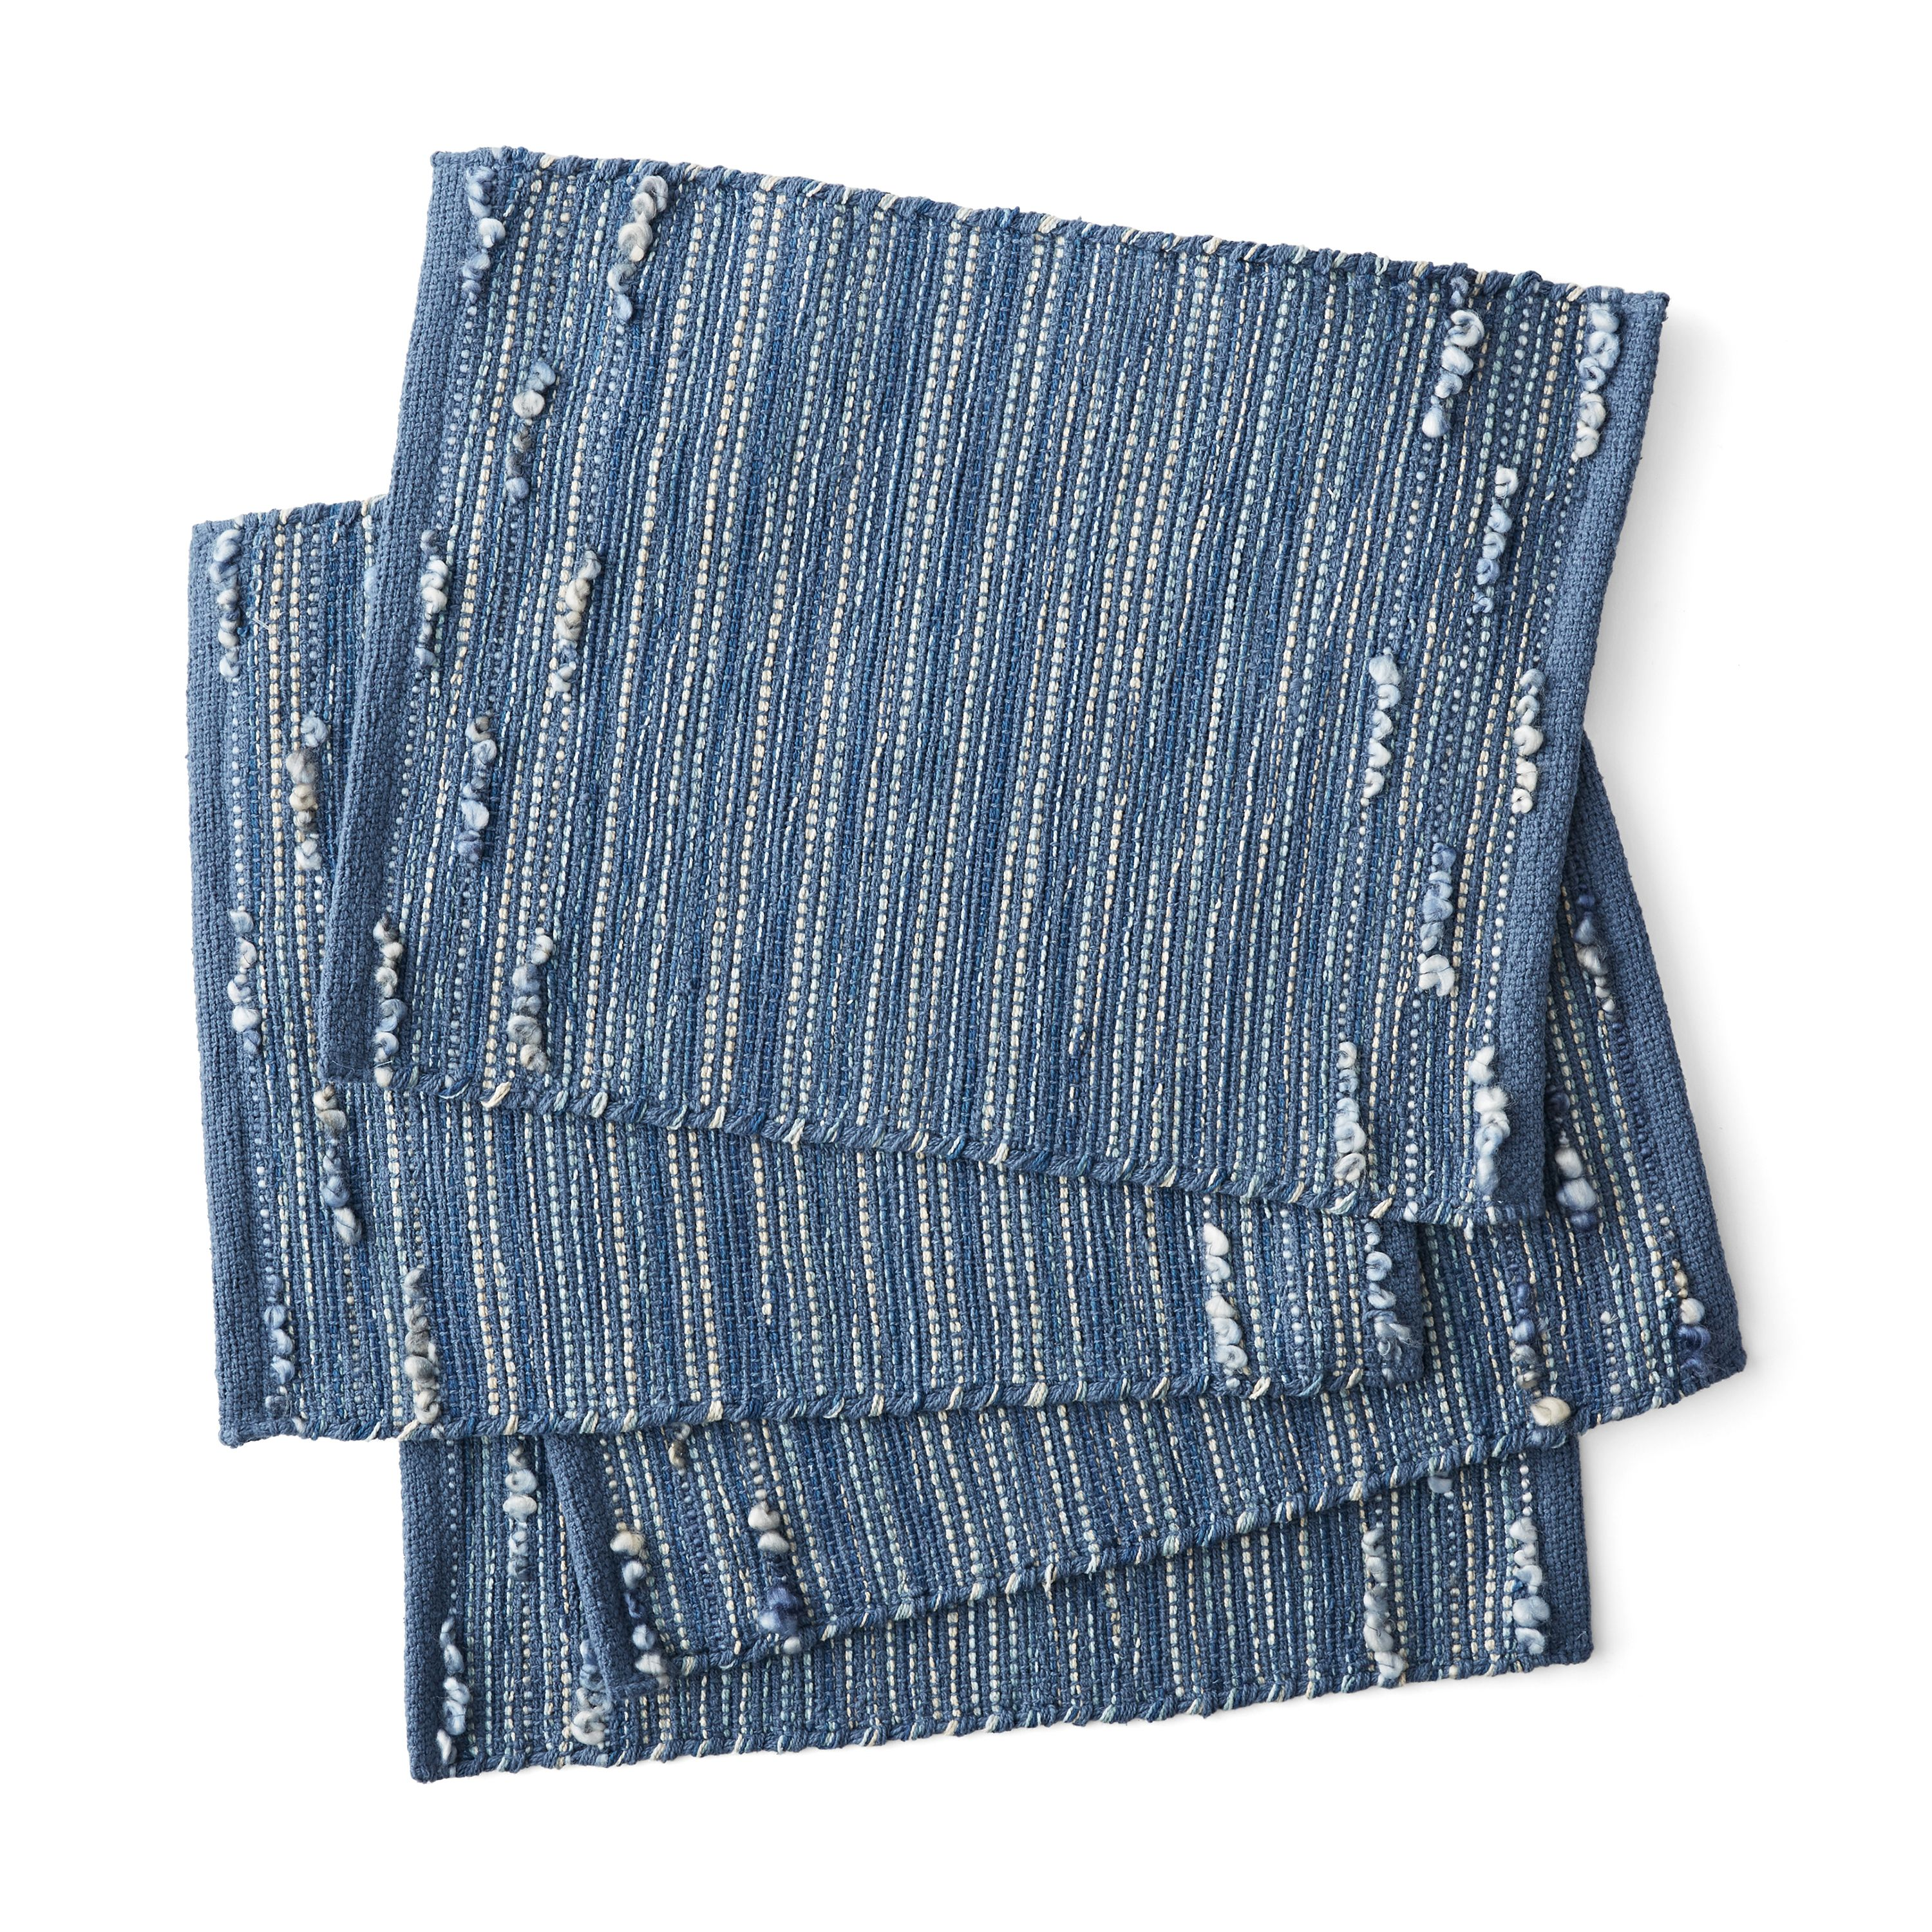 Better Homes & Gardens Striped Looped Placemats, Set of 4, Blue by Town & Country